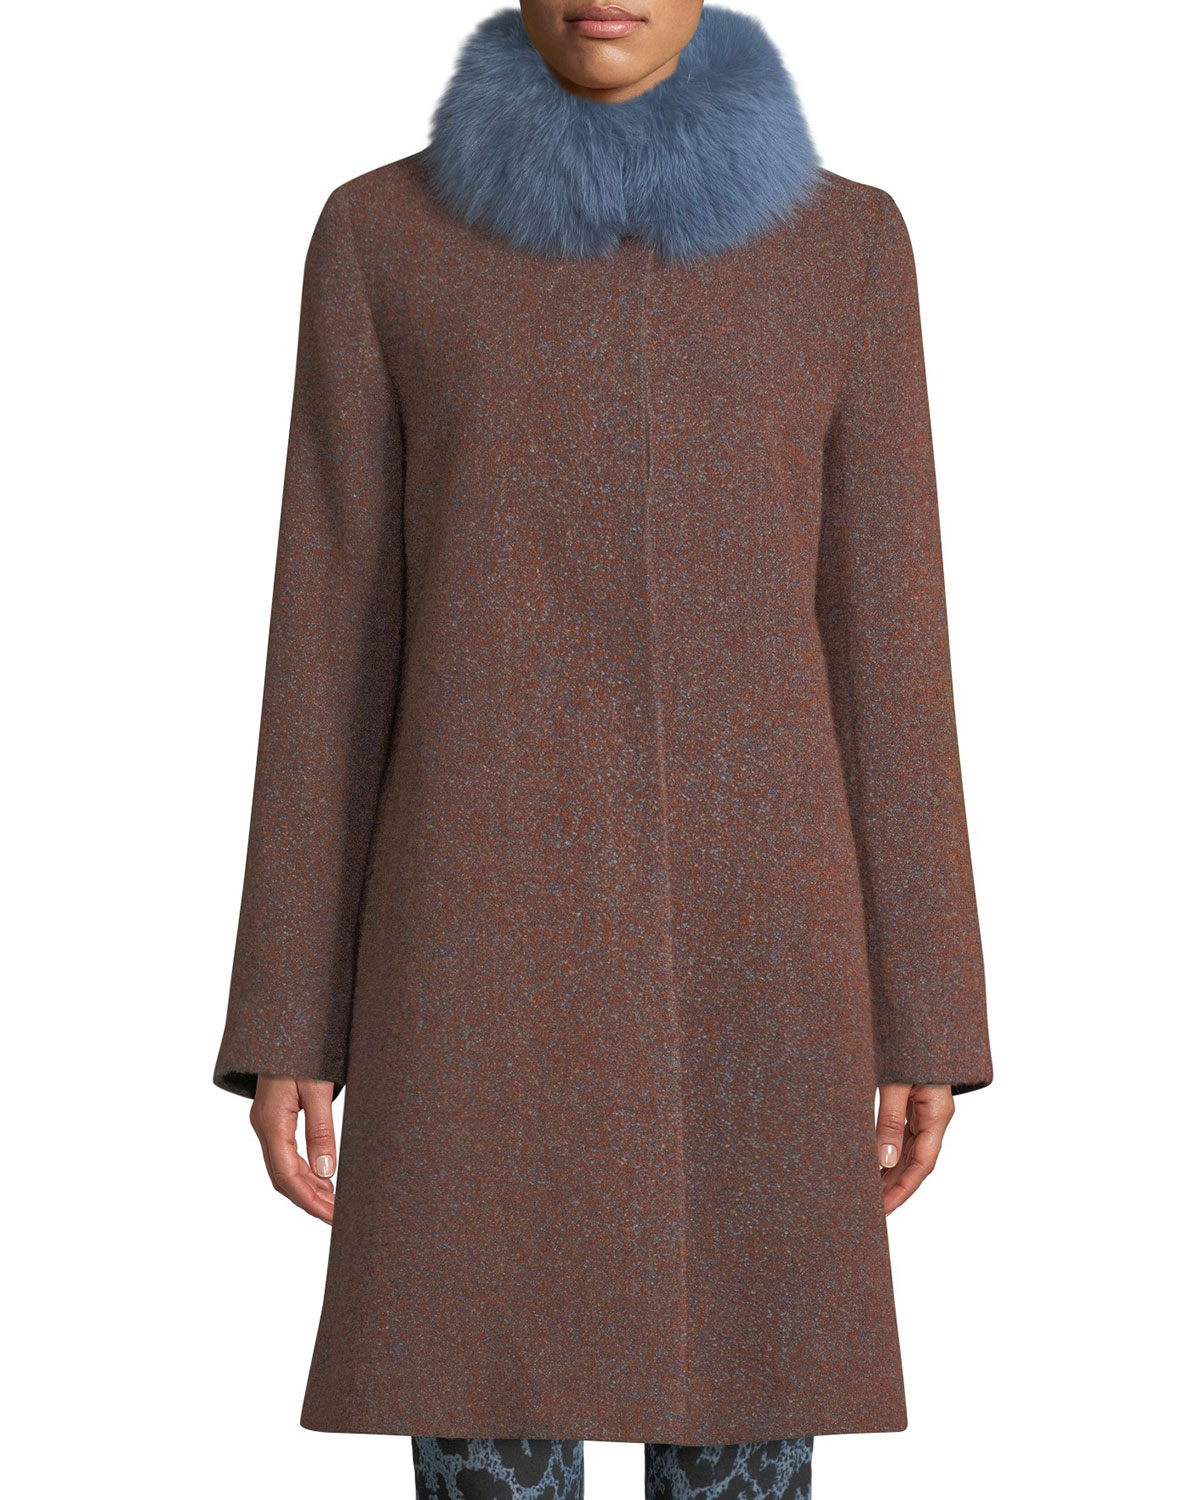 FLEURETTE Long Alpaca & Wool-Blend Coat W/ Fur Collar in Brown